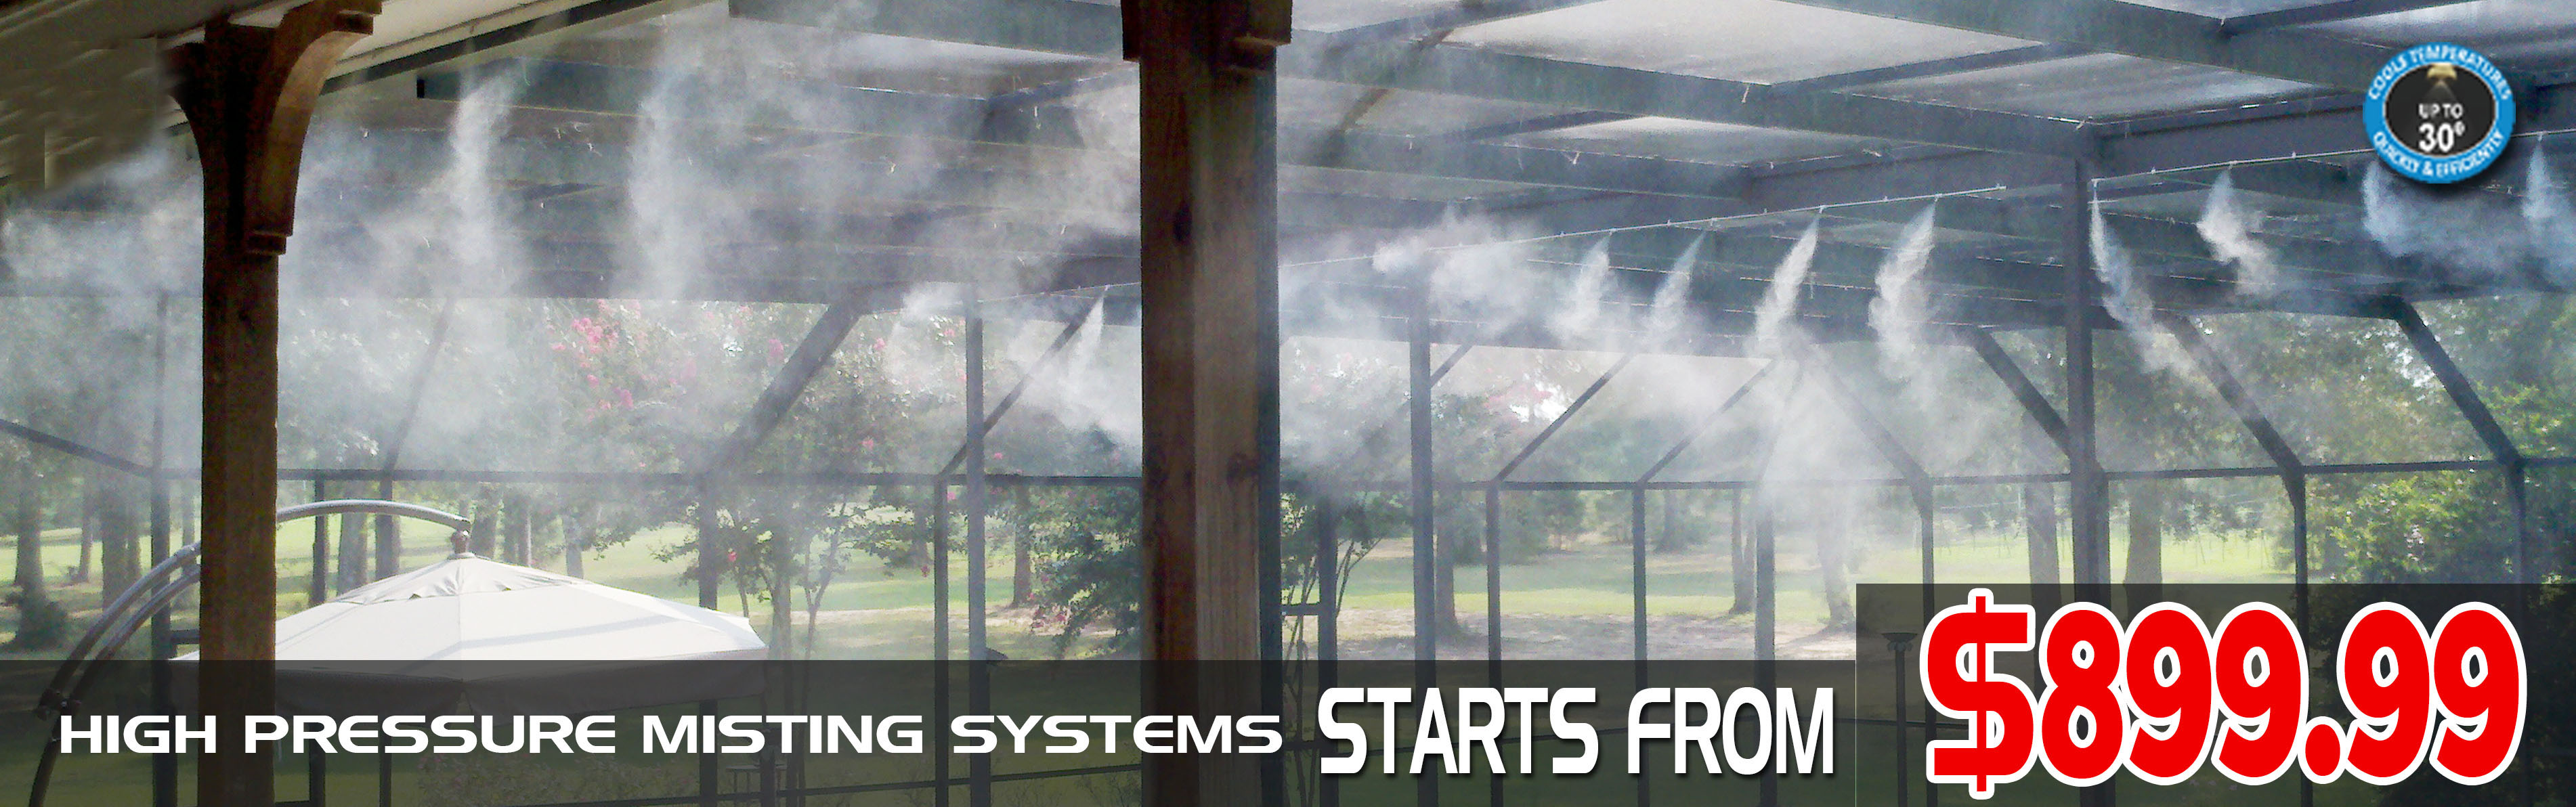 High Pressure Misting System Outdoor Misting System